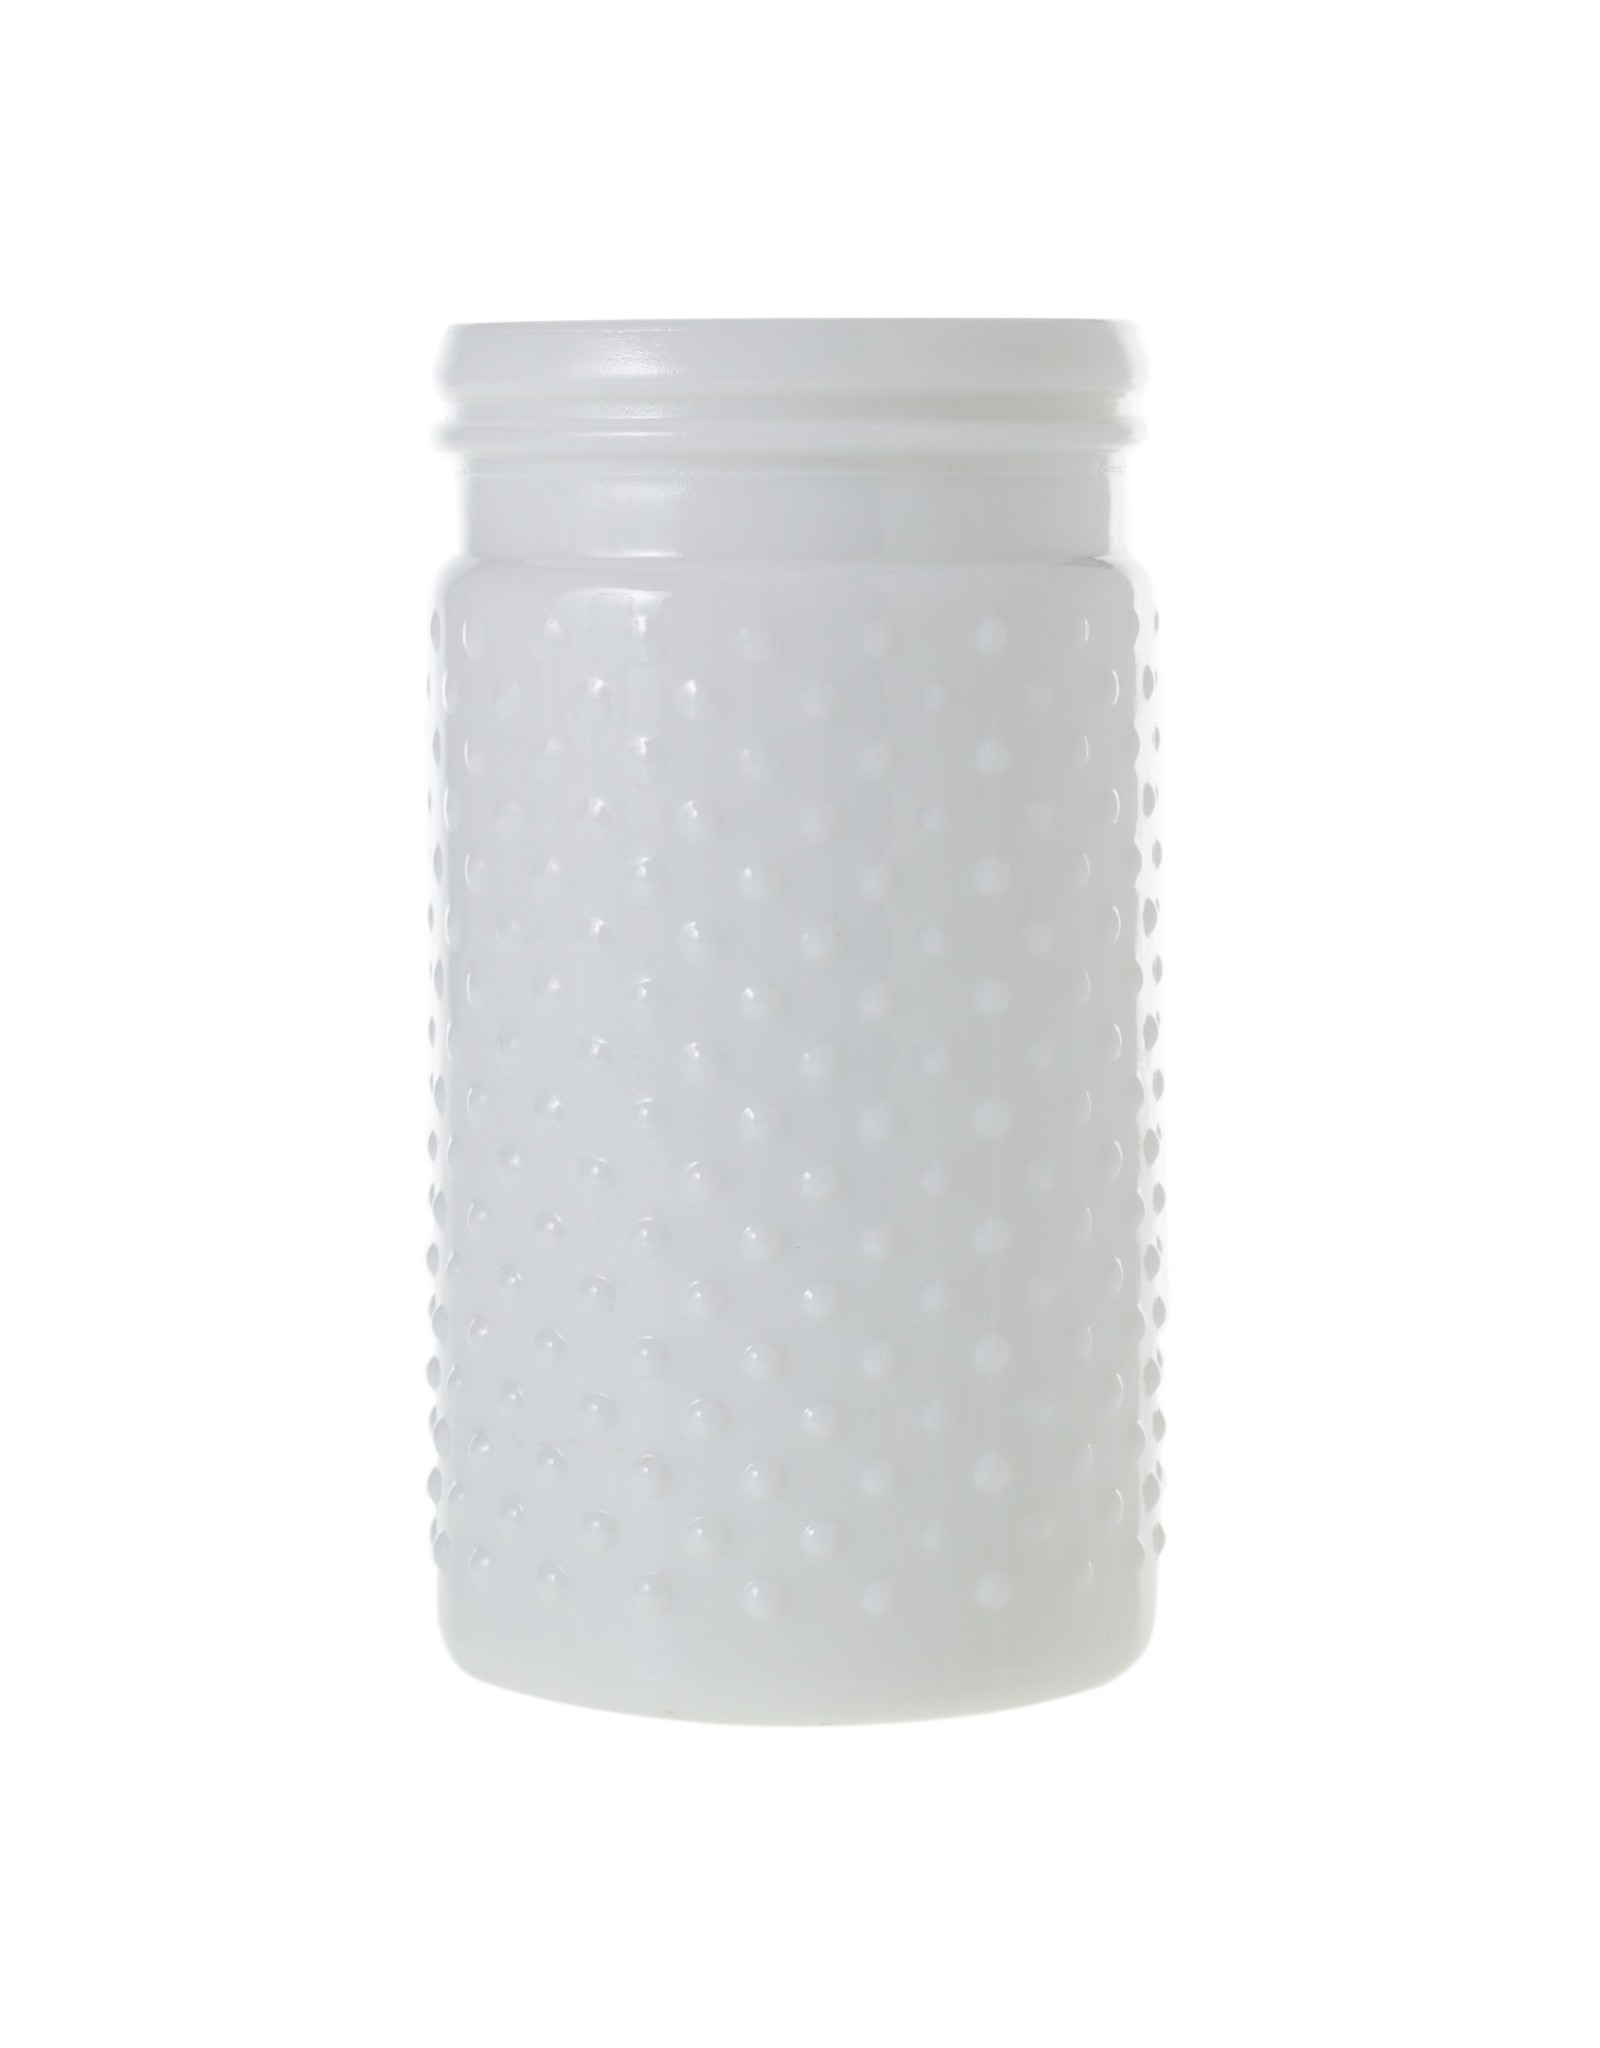 Hobnail Jar Vase in White